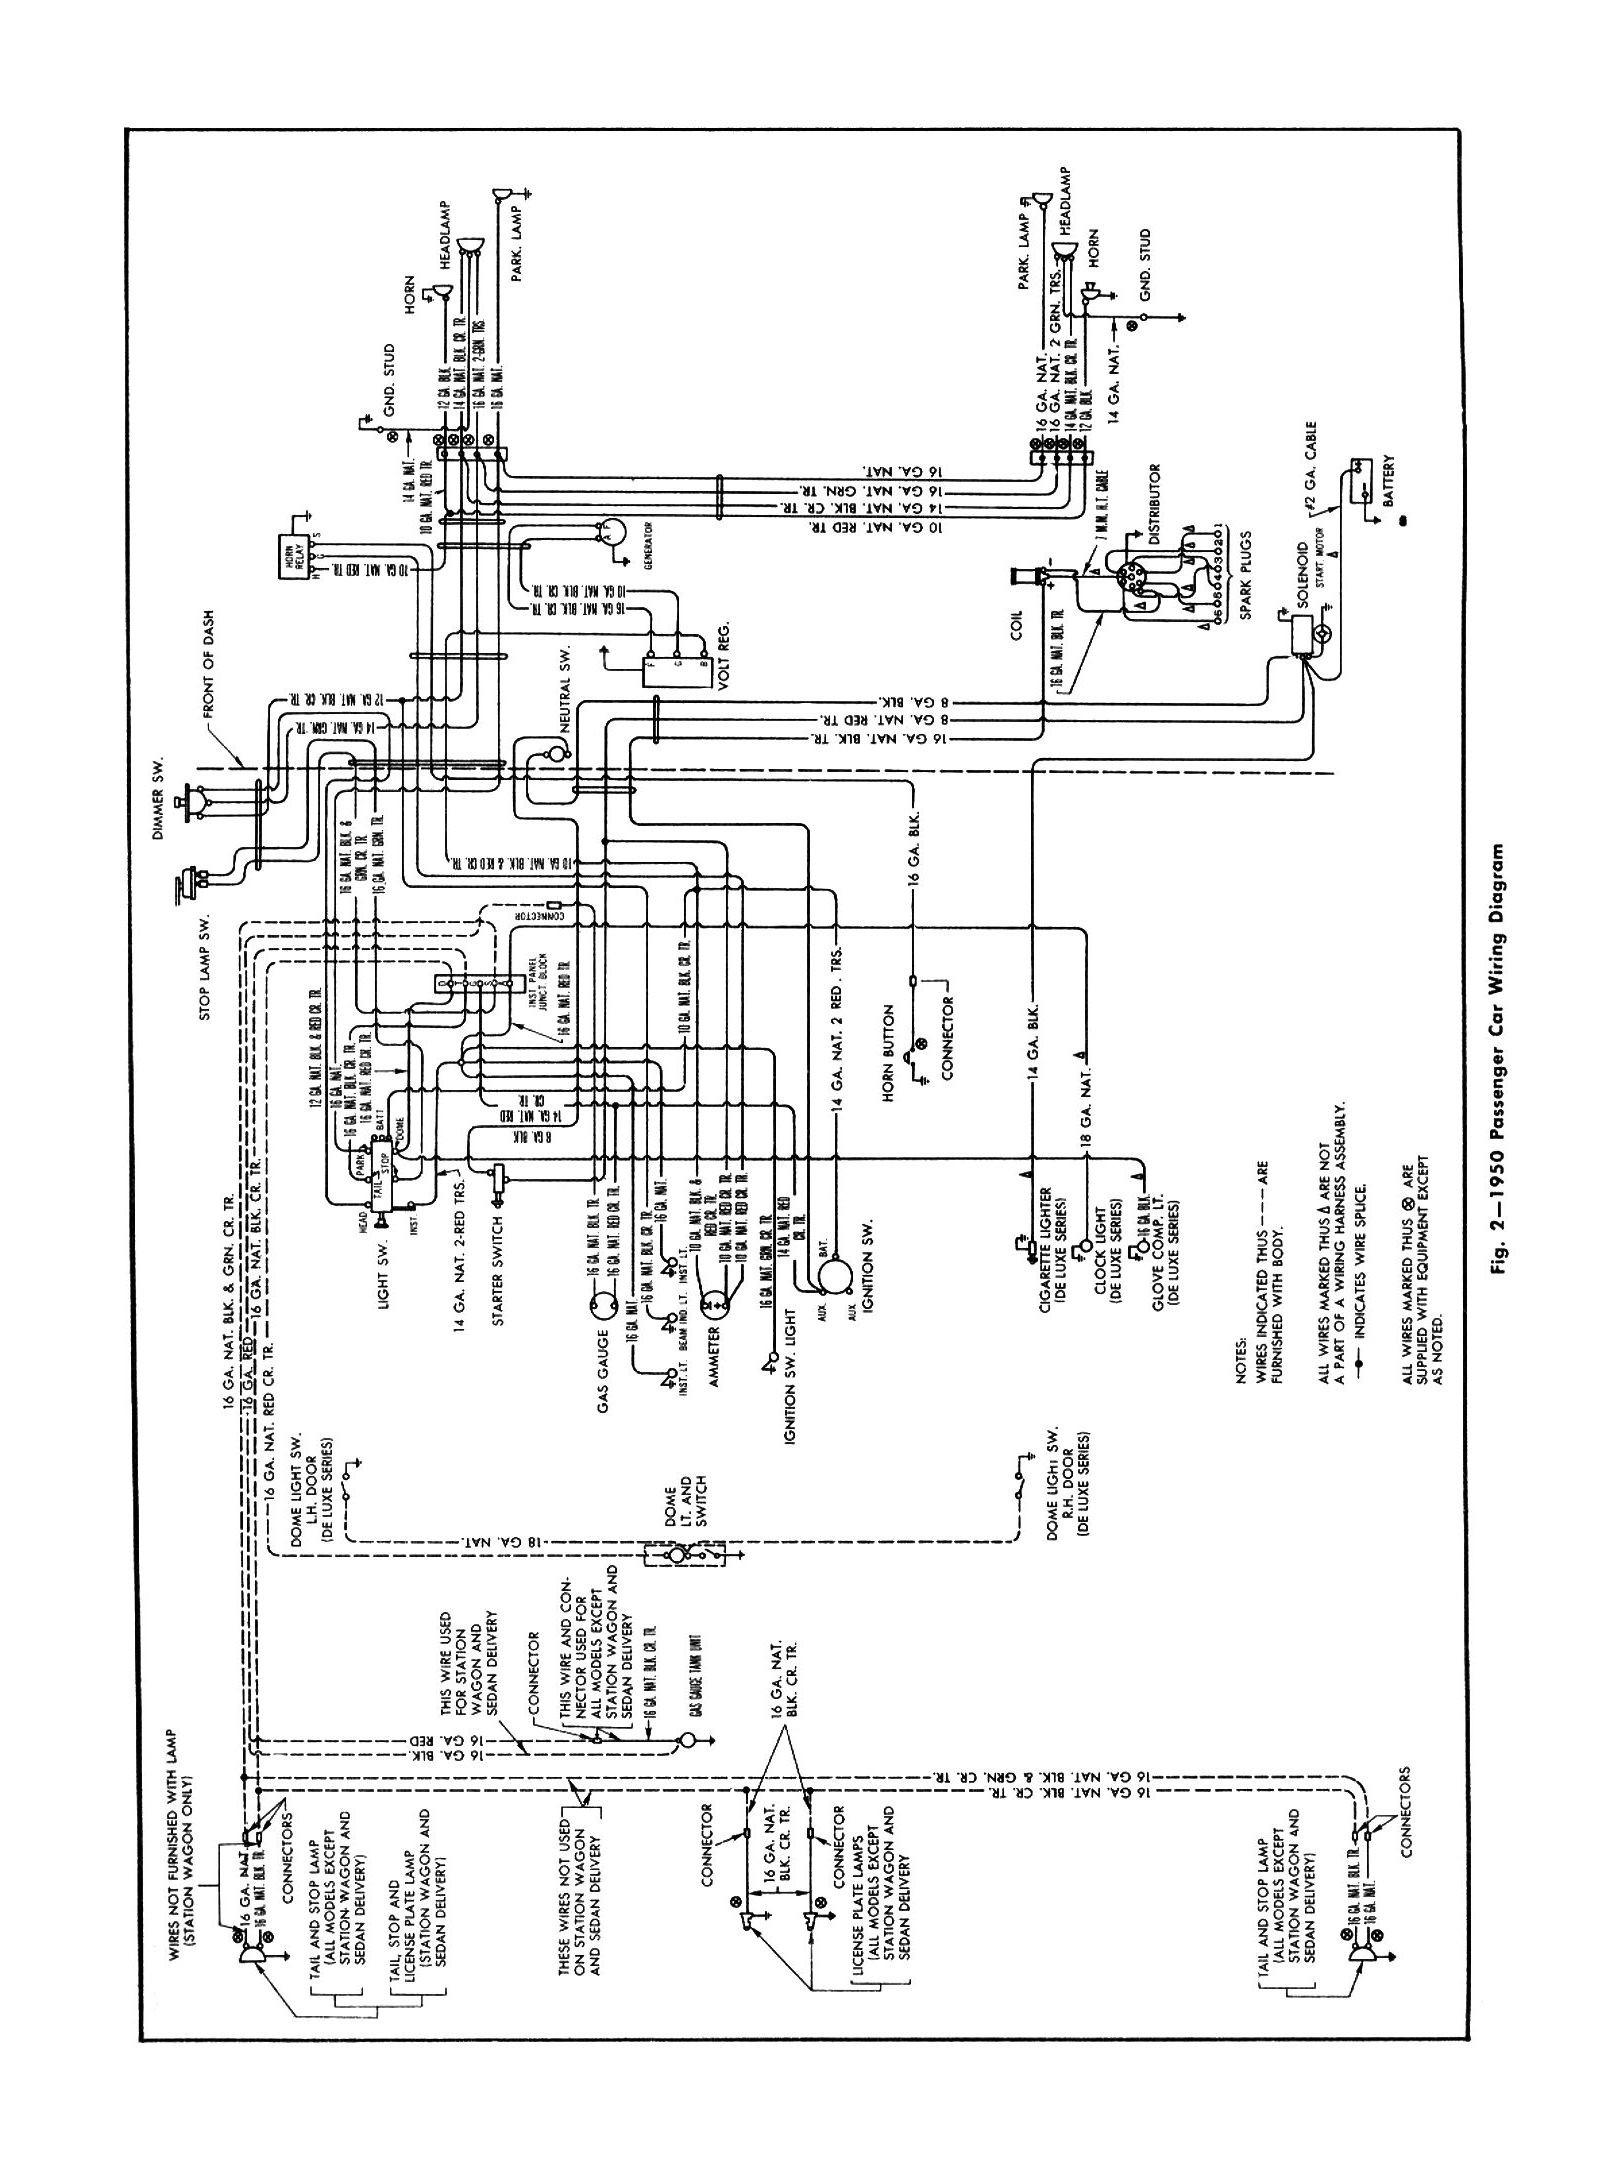 50car 1950 chevy truck wiring harness on 1950 download wirning diagrams 1954 ford wiring harness at fashall.co